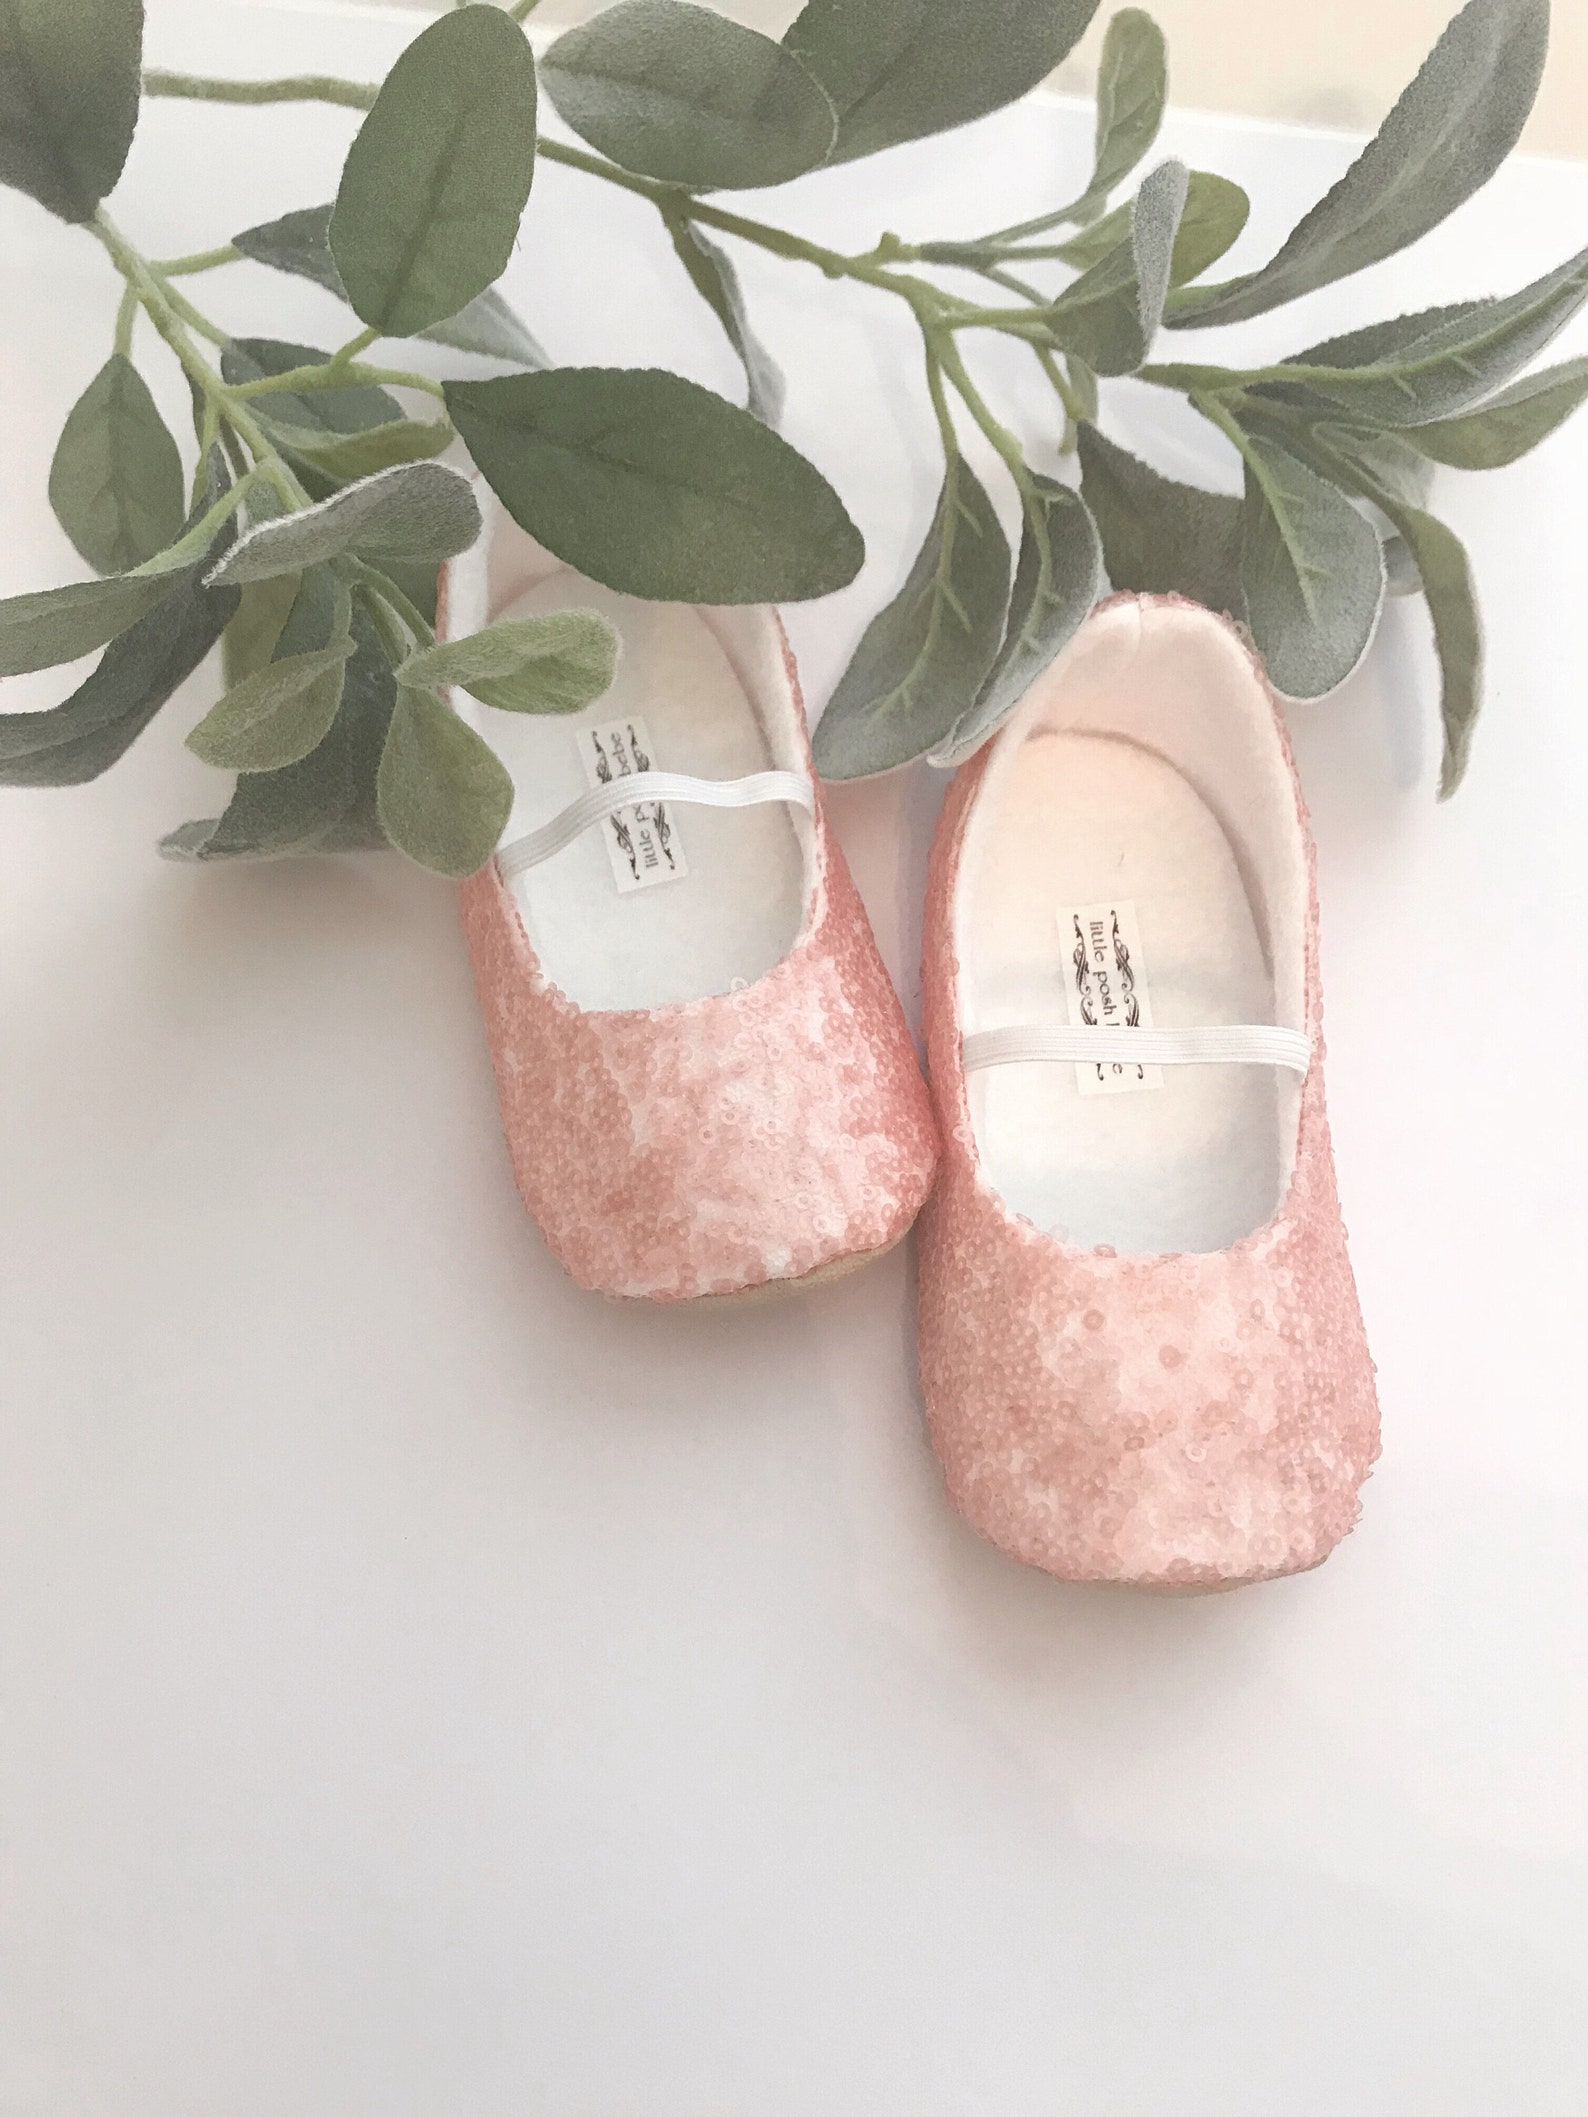 blush sequined ballet slippers - flower girl shoes - baby shoes - toddler girl shoes - christening - baptism- vintage chic - ara